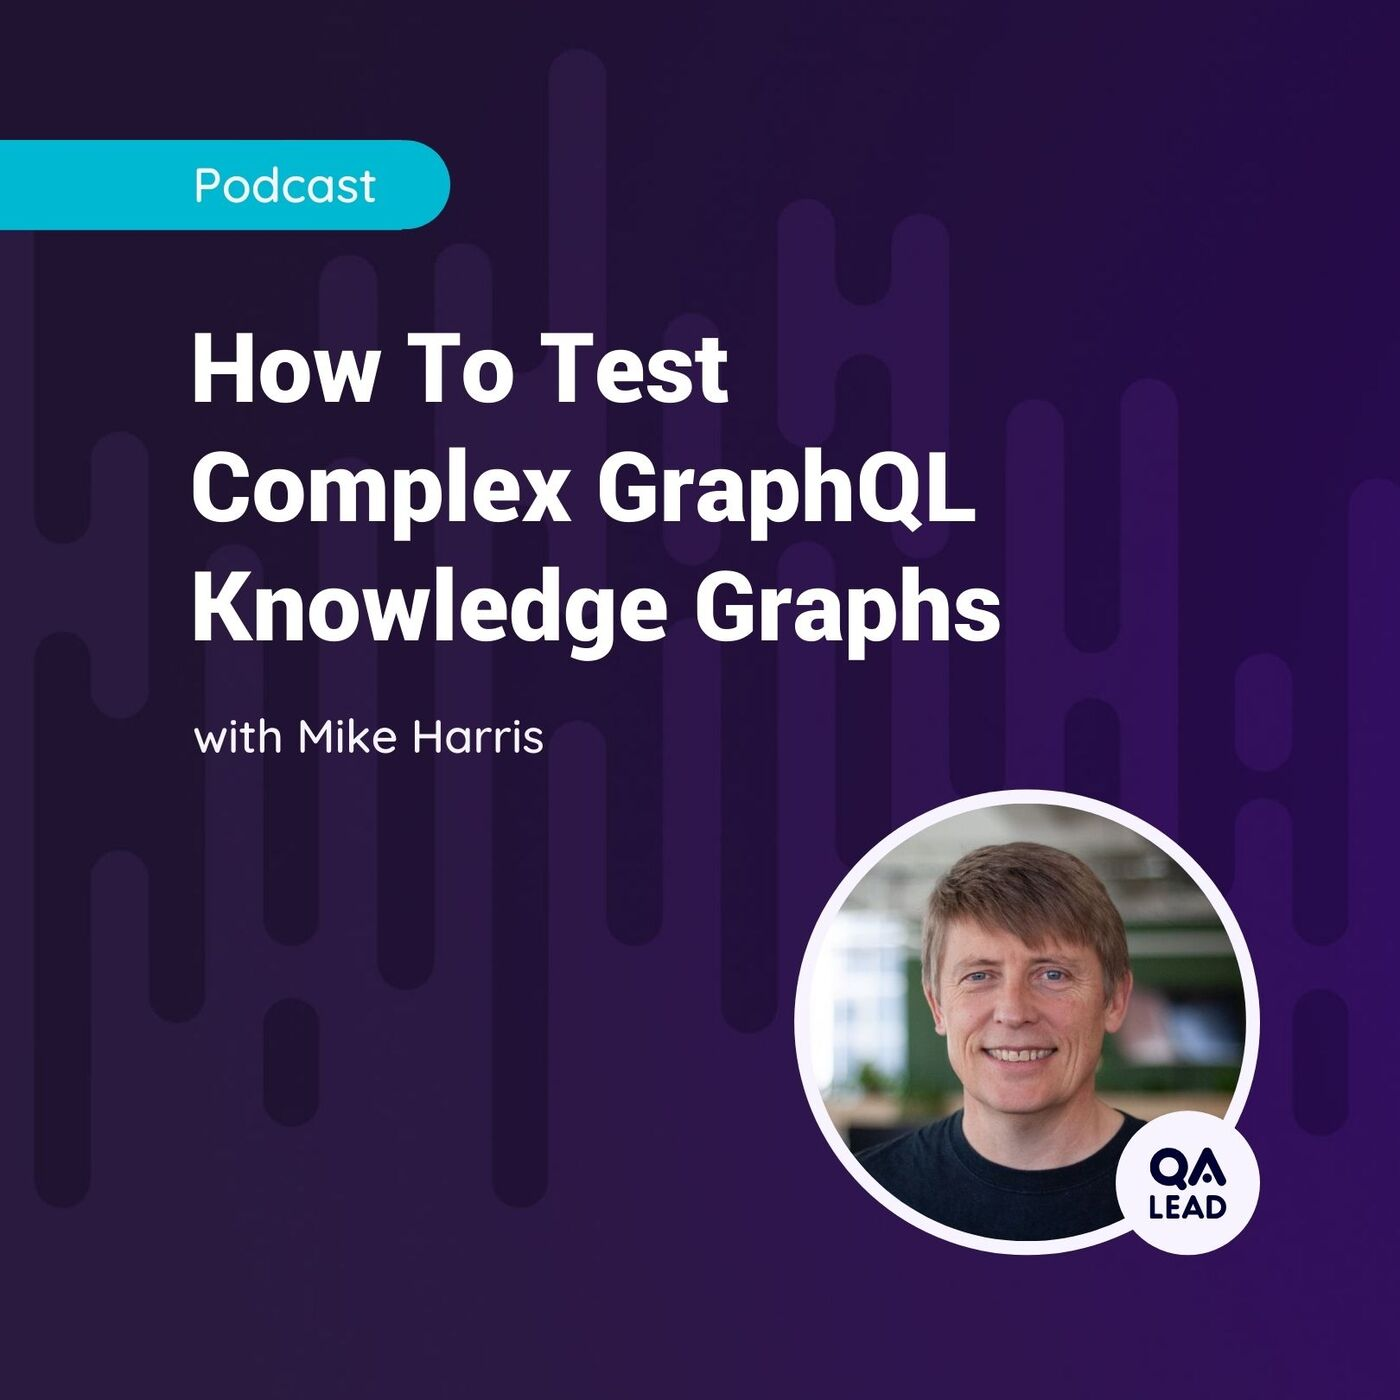 How To Test Complex GraphQL Knowledge Graphs (with Mike Harris from Geckoboard)